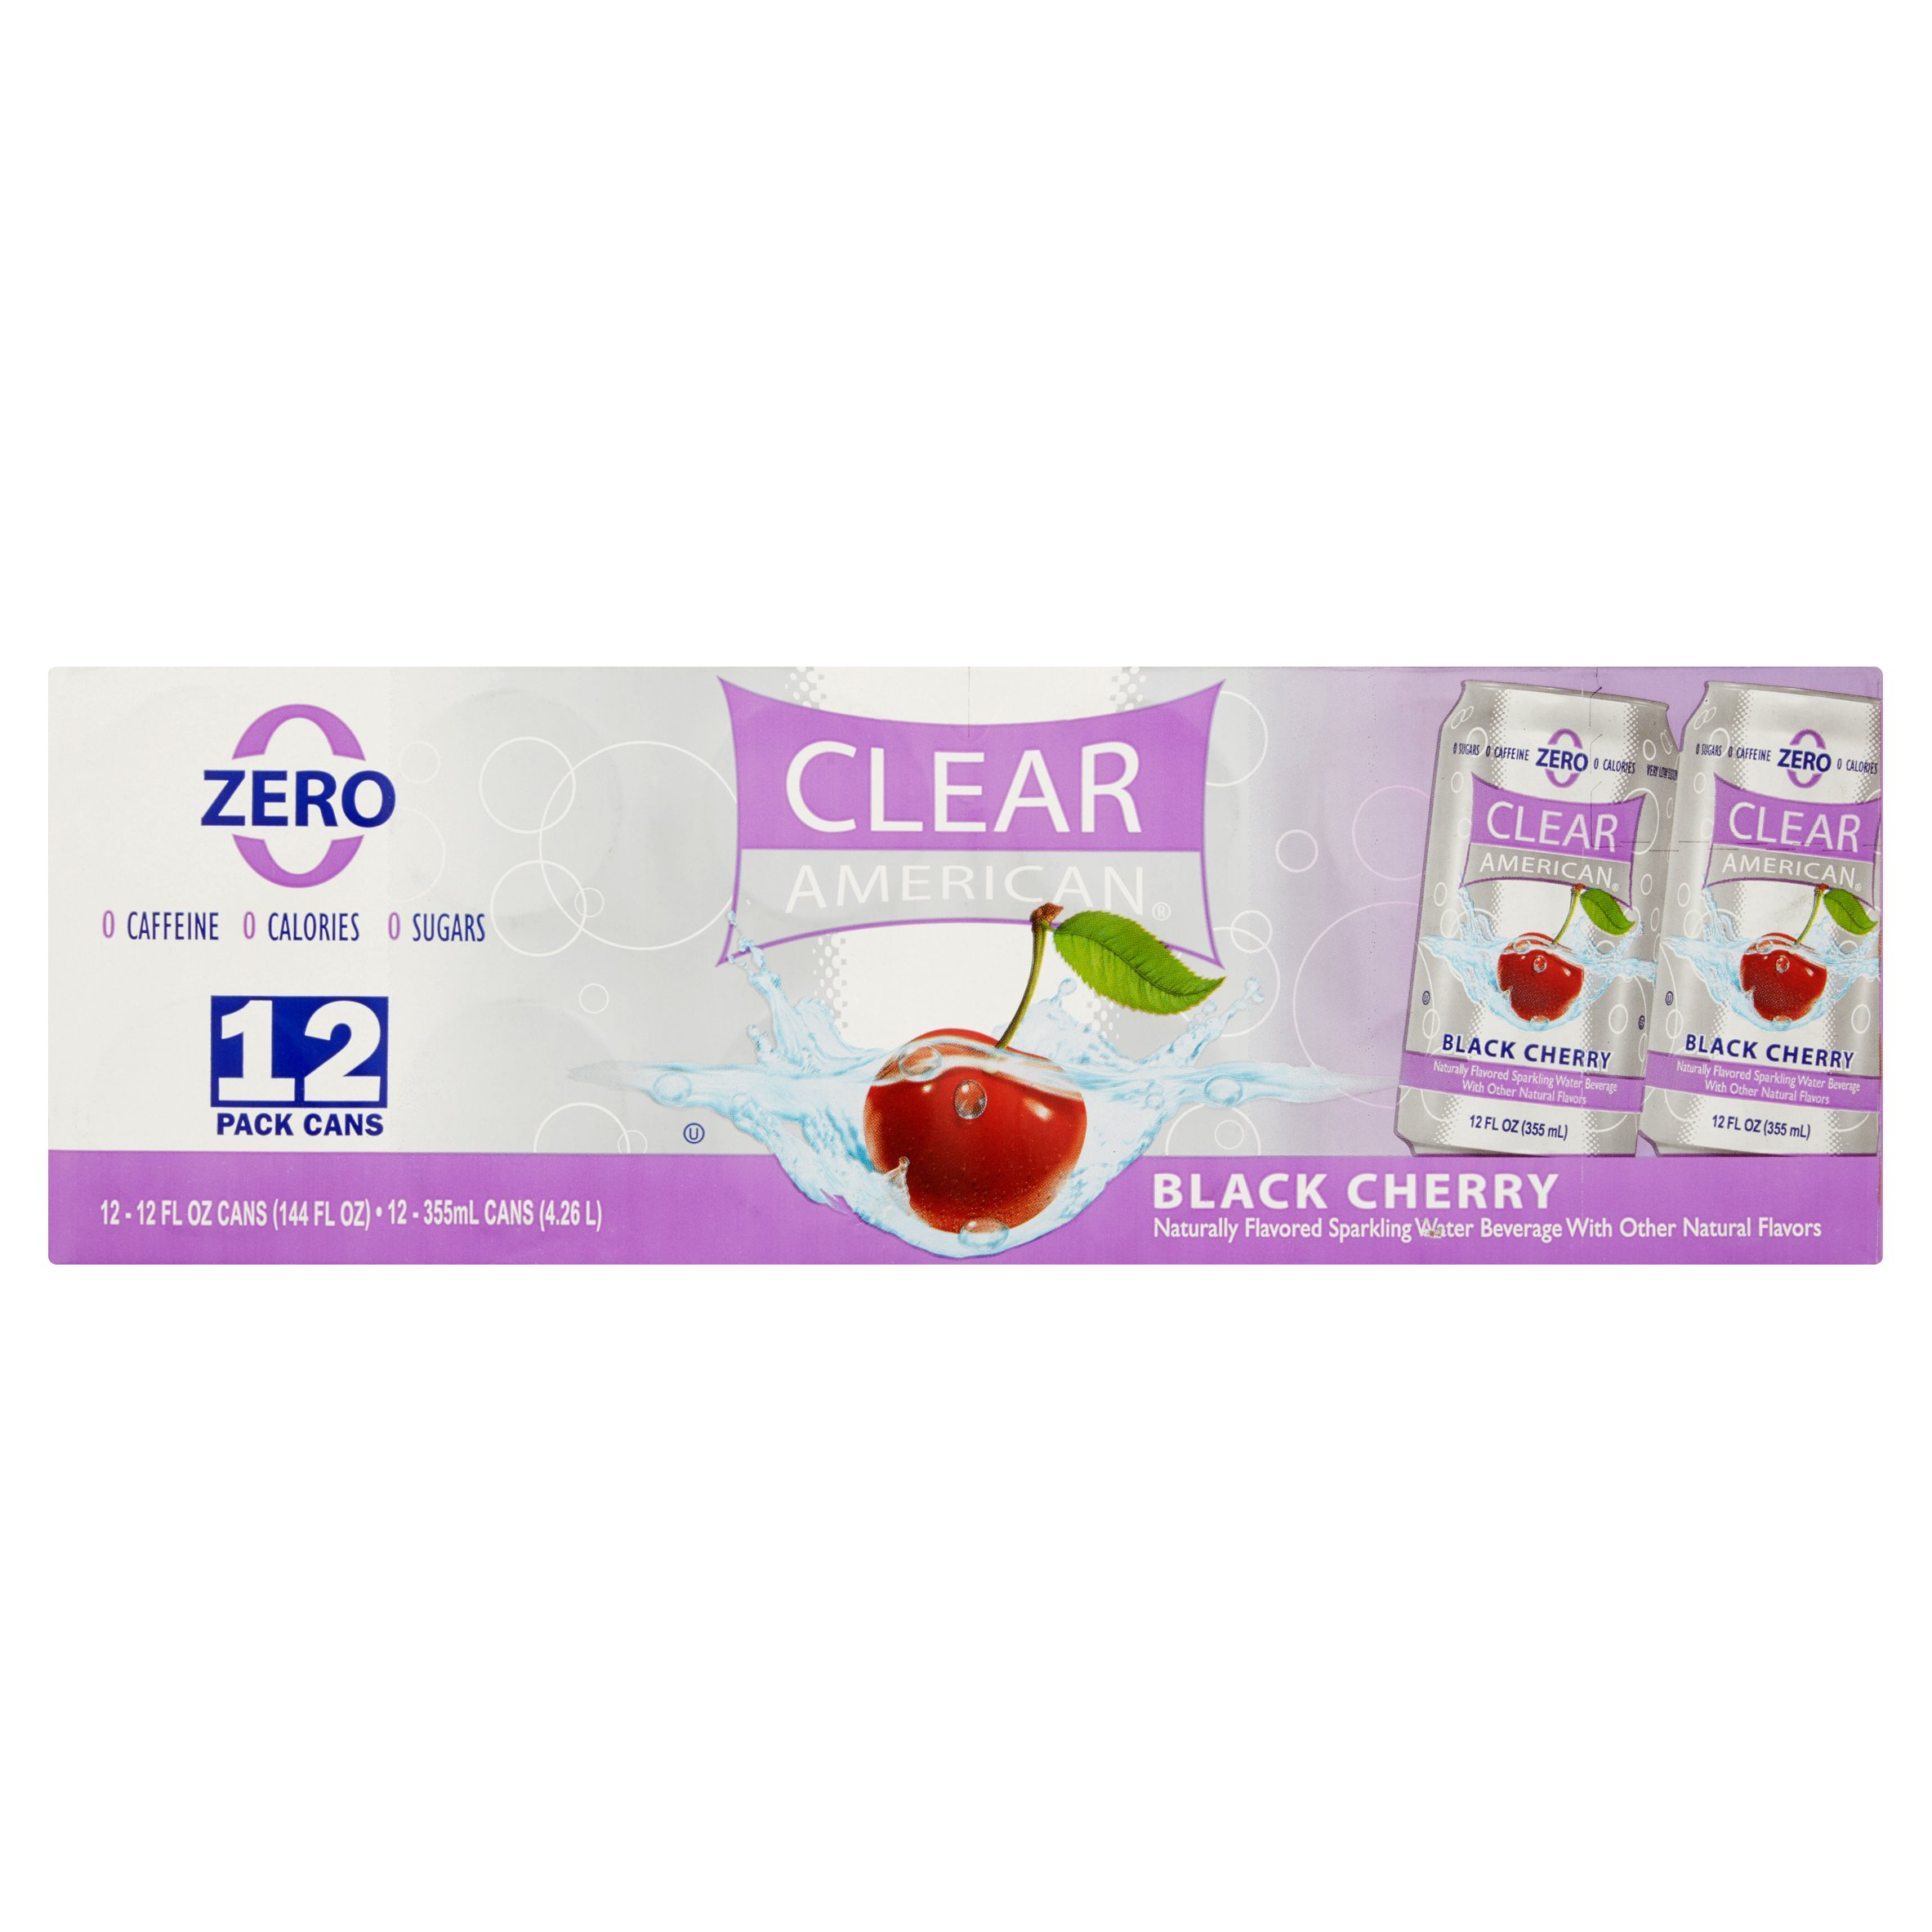 Clear American Black Cherry Sparkling Water Beverage, 12 fl oz, 12 ct by Wal-Mart Stores, Inc.